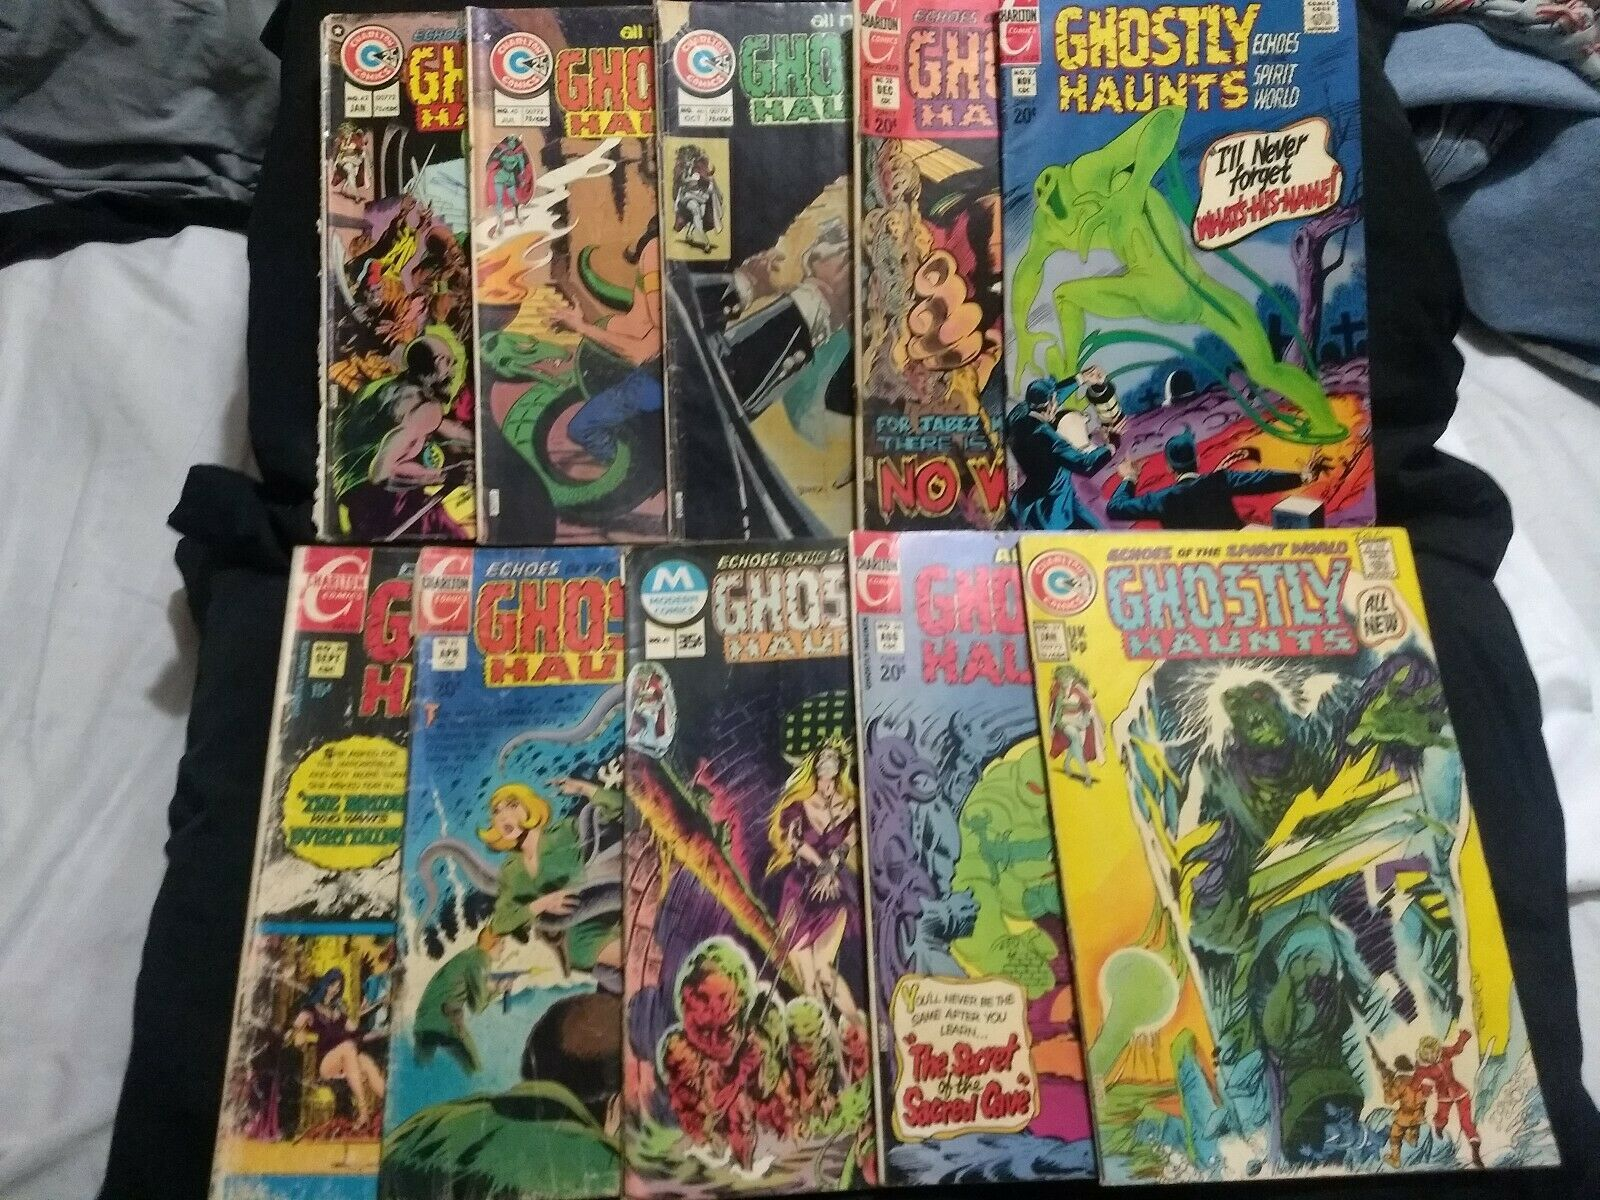 Ghostly Haunts  10 book collection #20/26-28/31/37/41/42/45/46 (1971,charlton)VG - $45.00